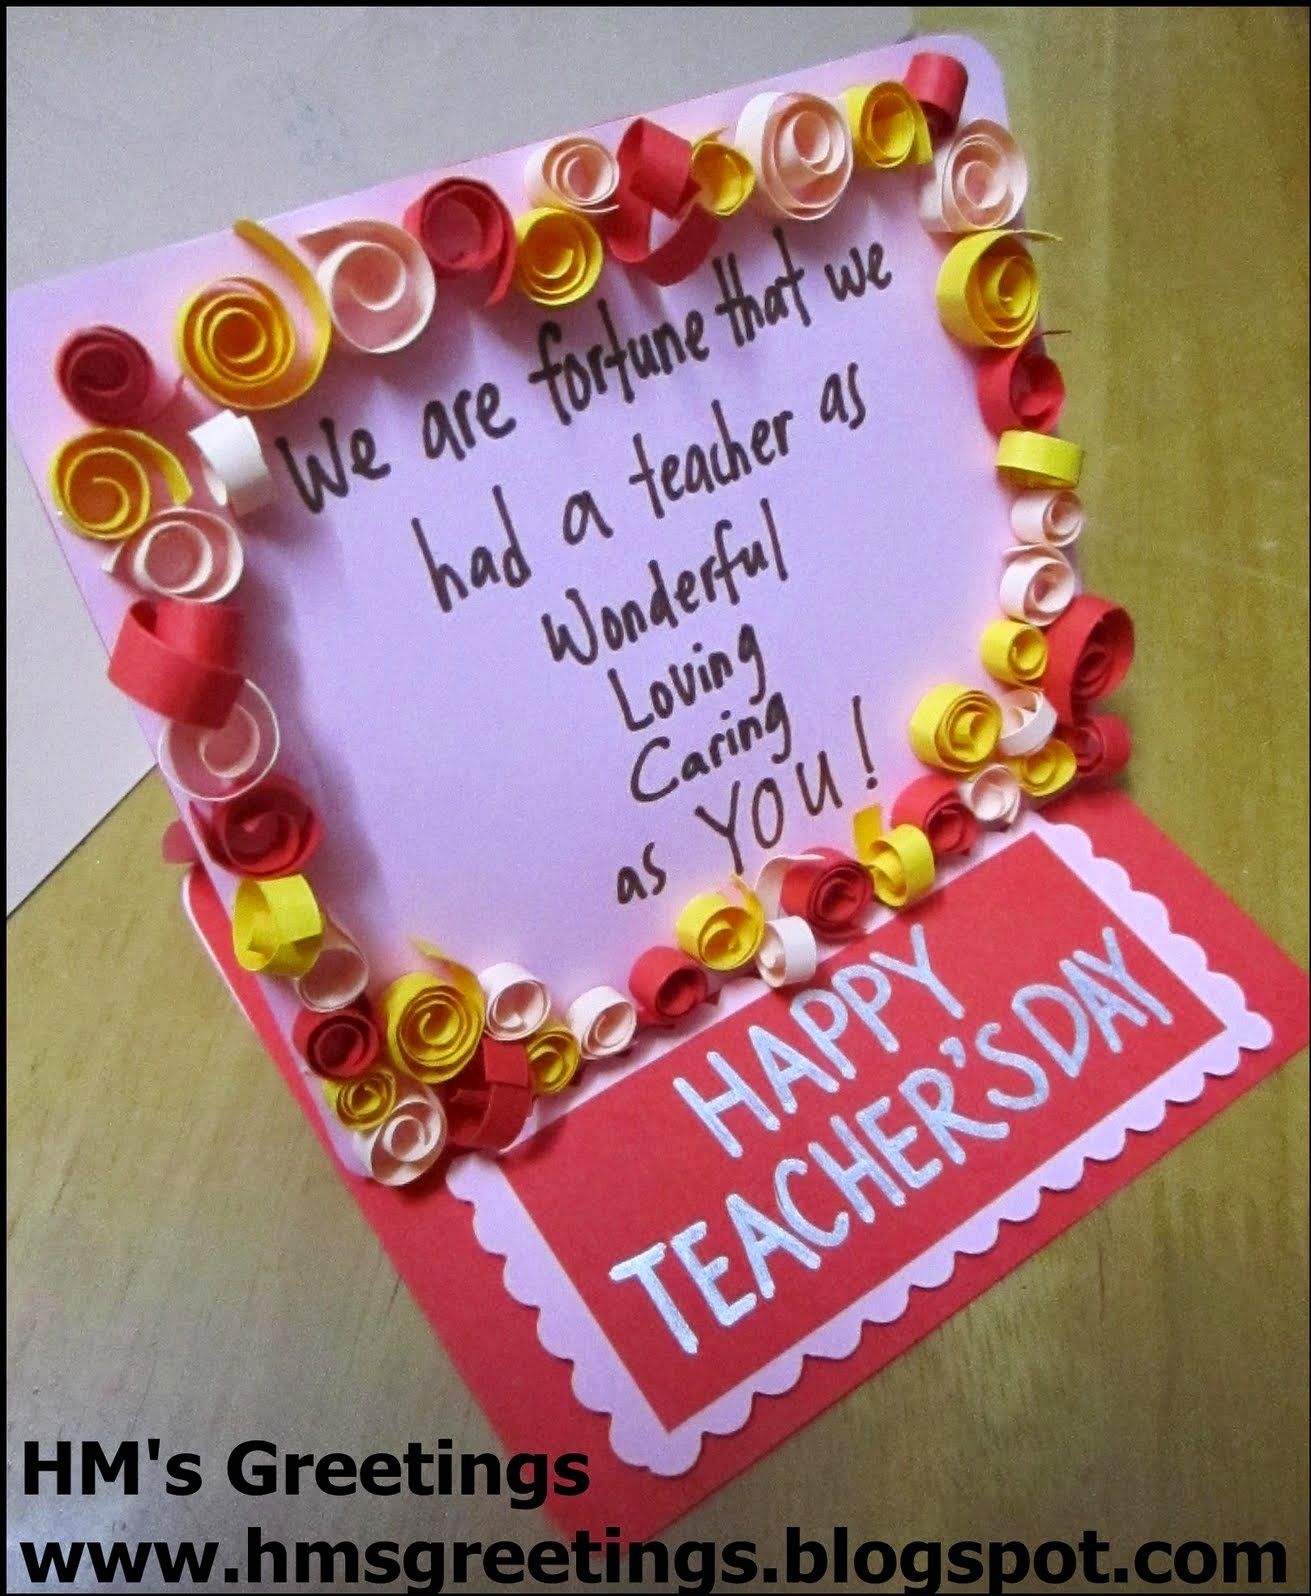 teachers day pictures, images, greetings, cards for fb, twitter, snapchat, instagram